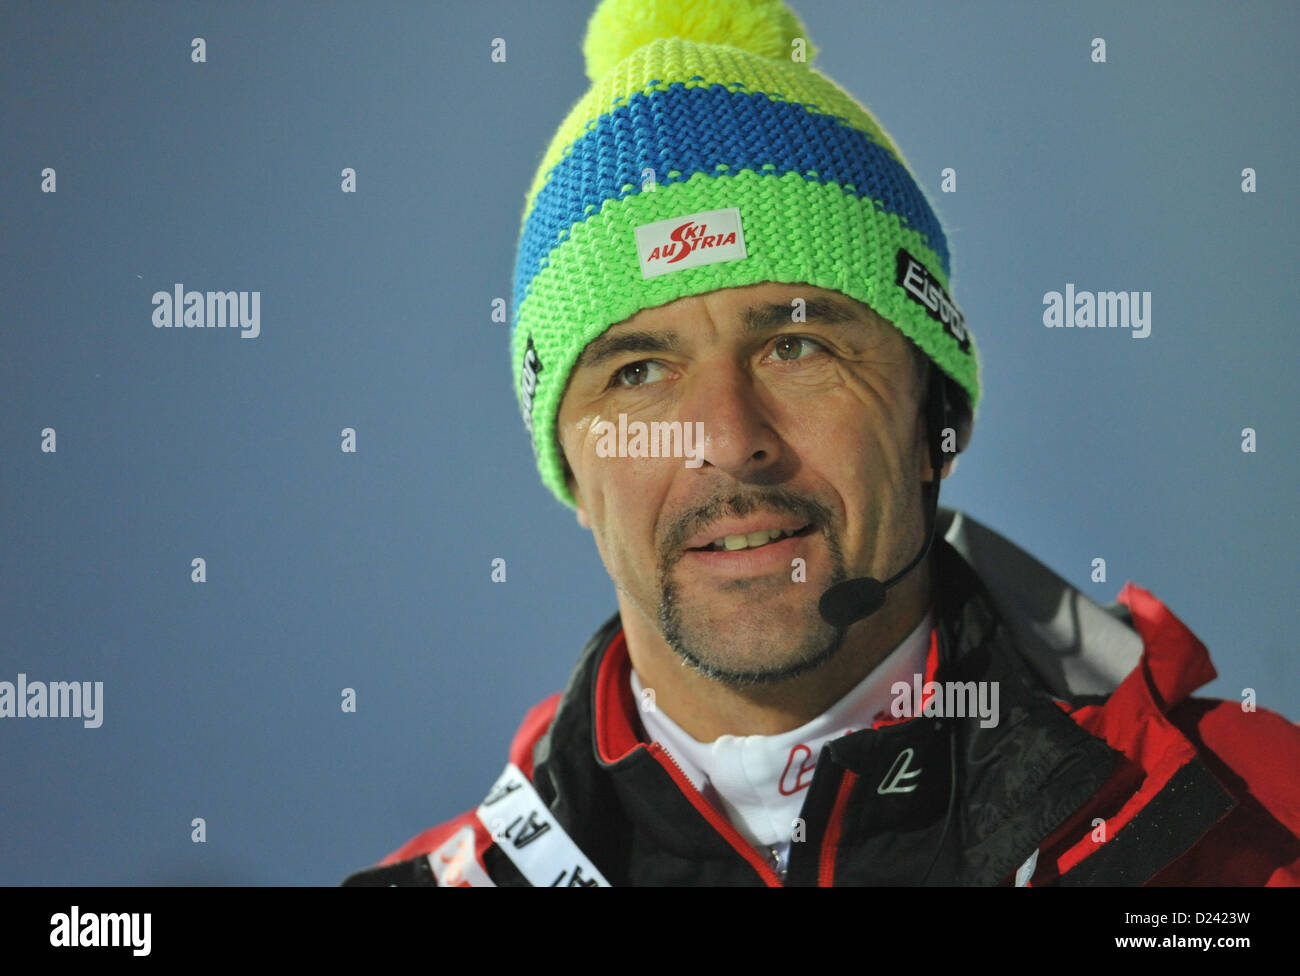 German coach of the Austrian team Remo Krug gestures during the men's 10 km sprint race of the Biathlon World - Stock Image